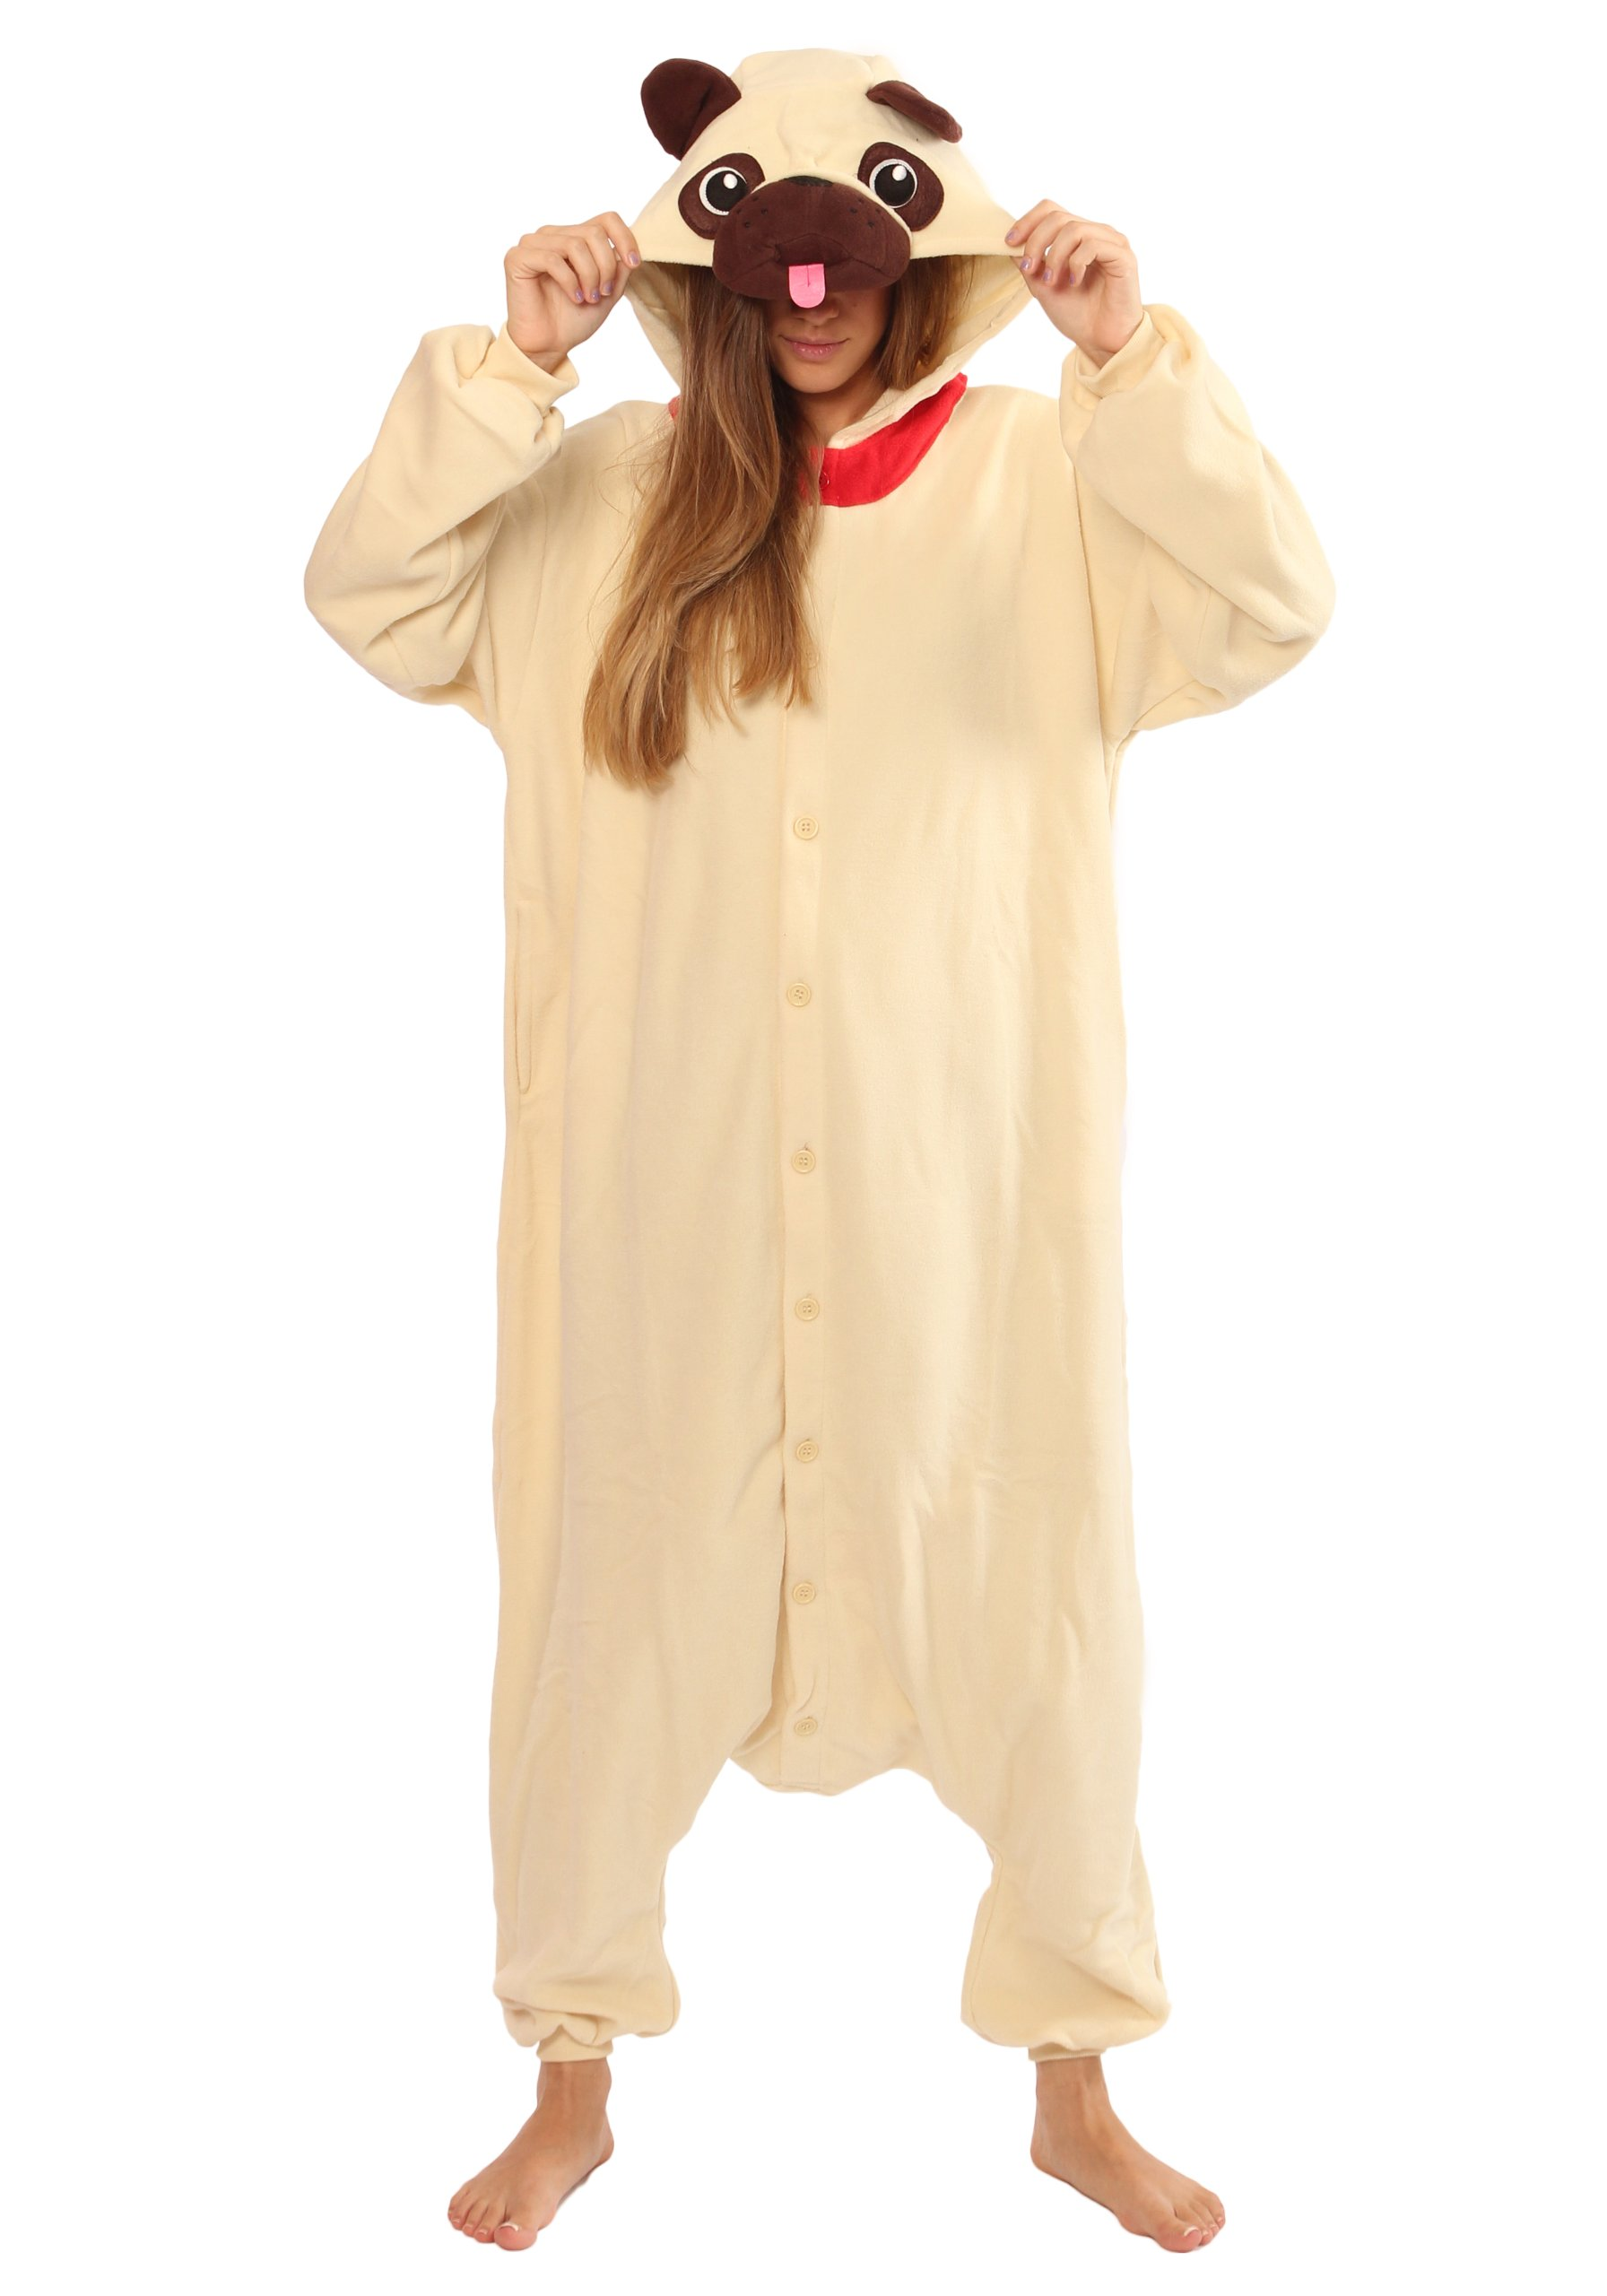 Pug Dog Kigurumi - Adult Costume